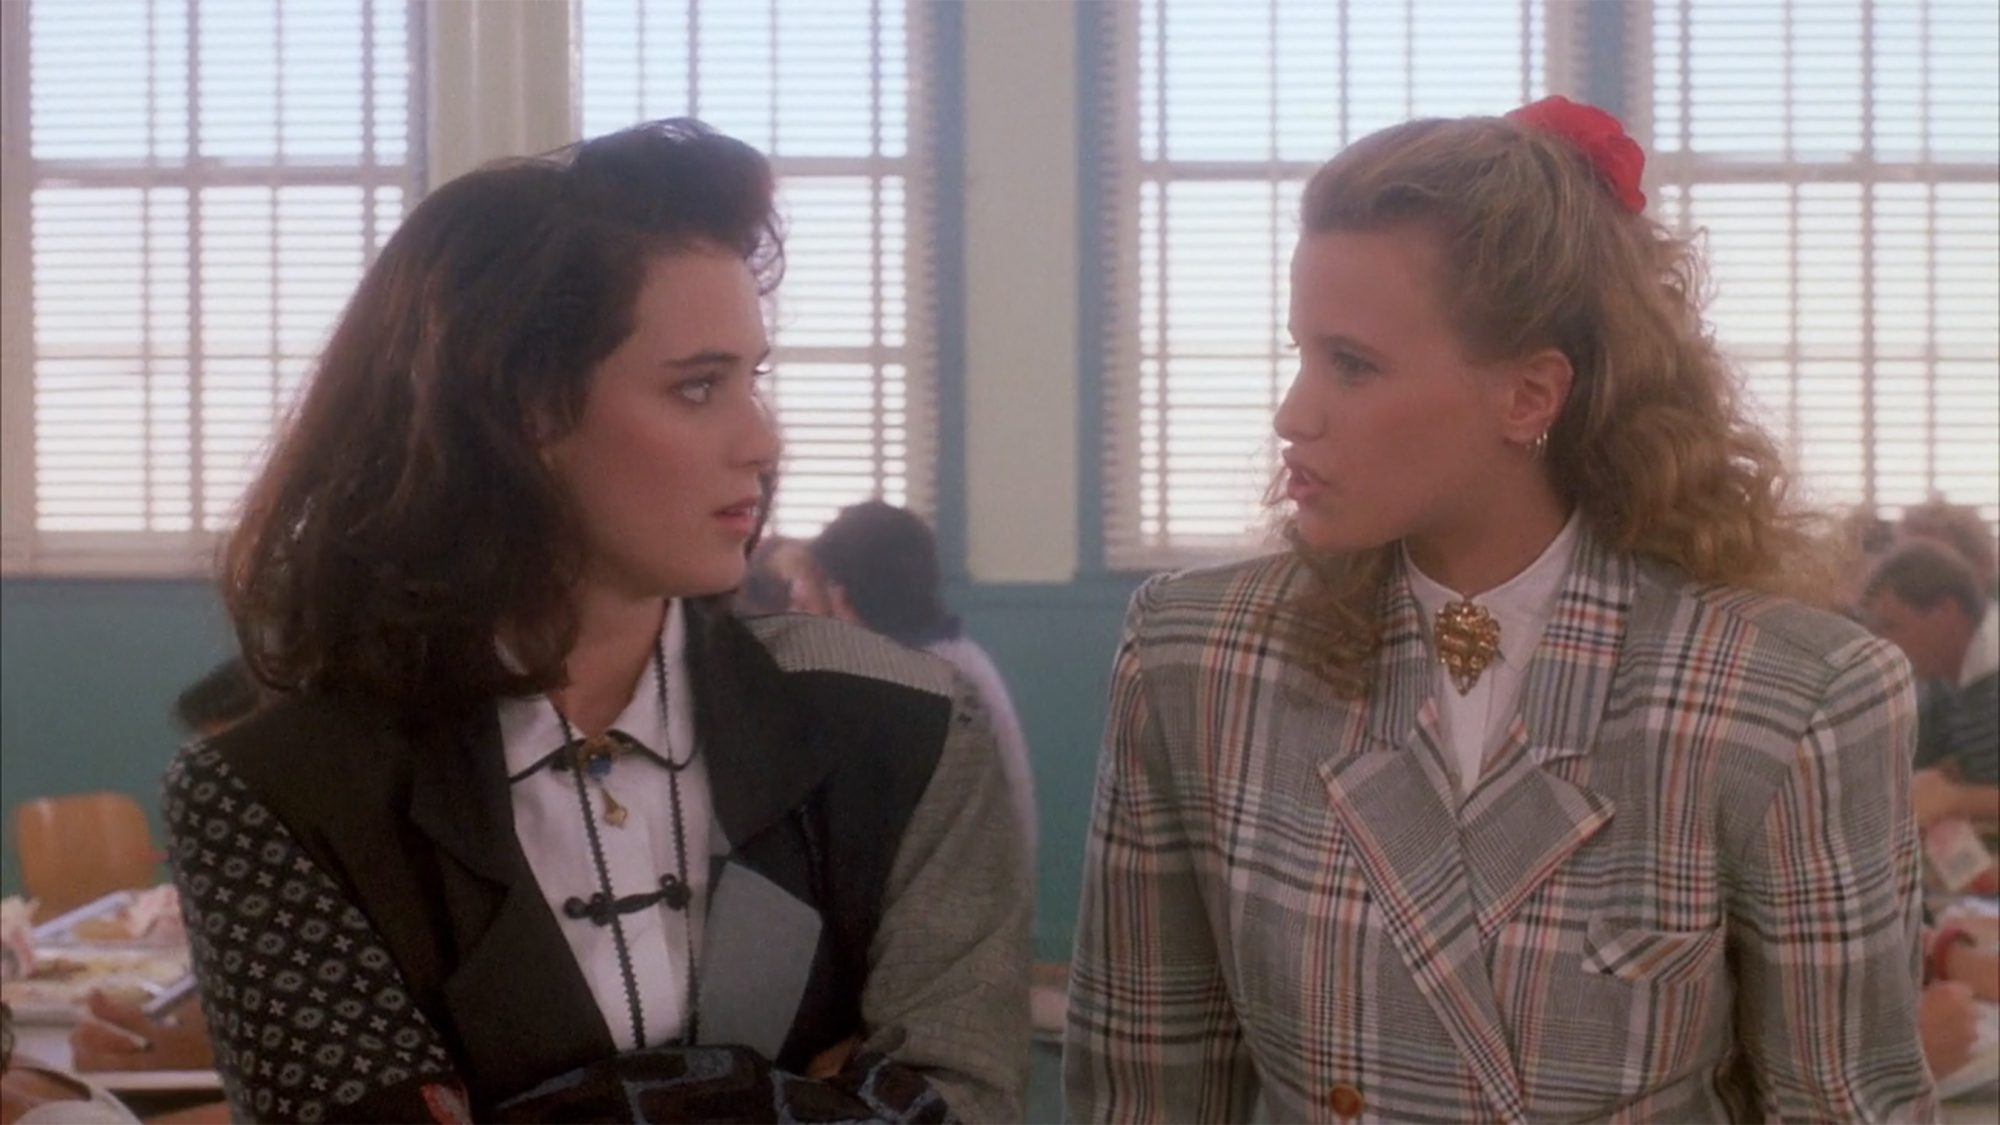 Heathers - 1989Credit: New World Pictures